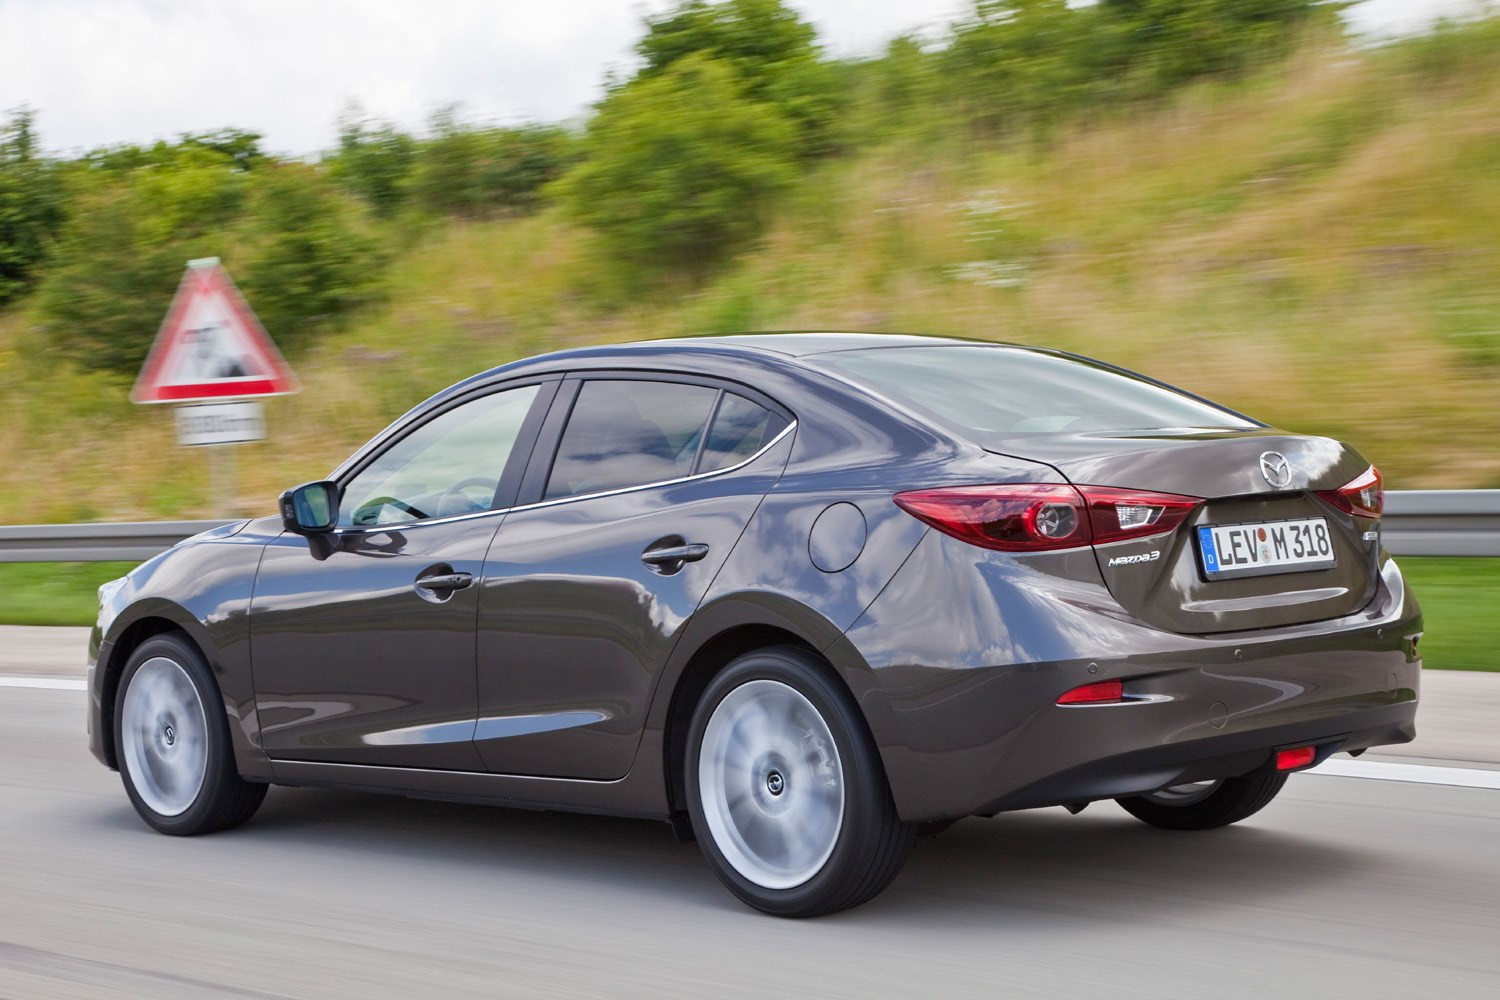 Used Mazda 3 Fastback (2013 - 2018) Review | Parkers